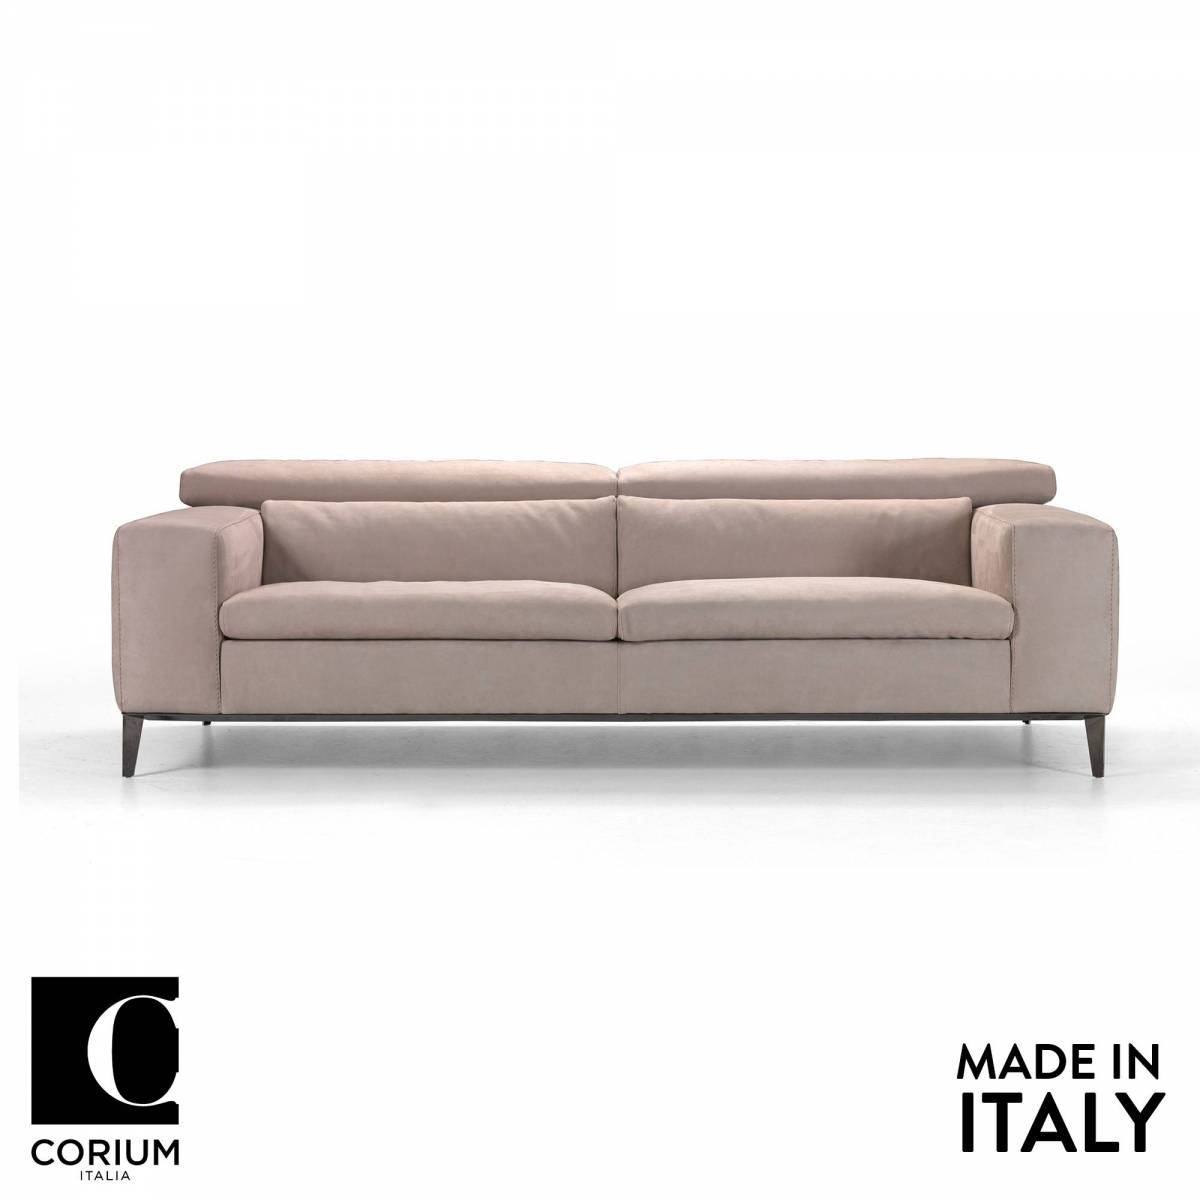 sofa made in italy leather sofa made in italy catchy elegant high thesofa. Black Bedroom Furniture Sets. Home Design Ideas